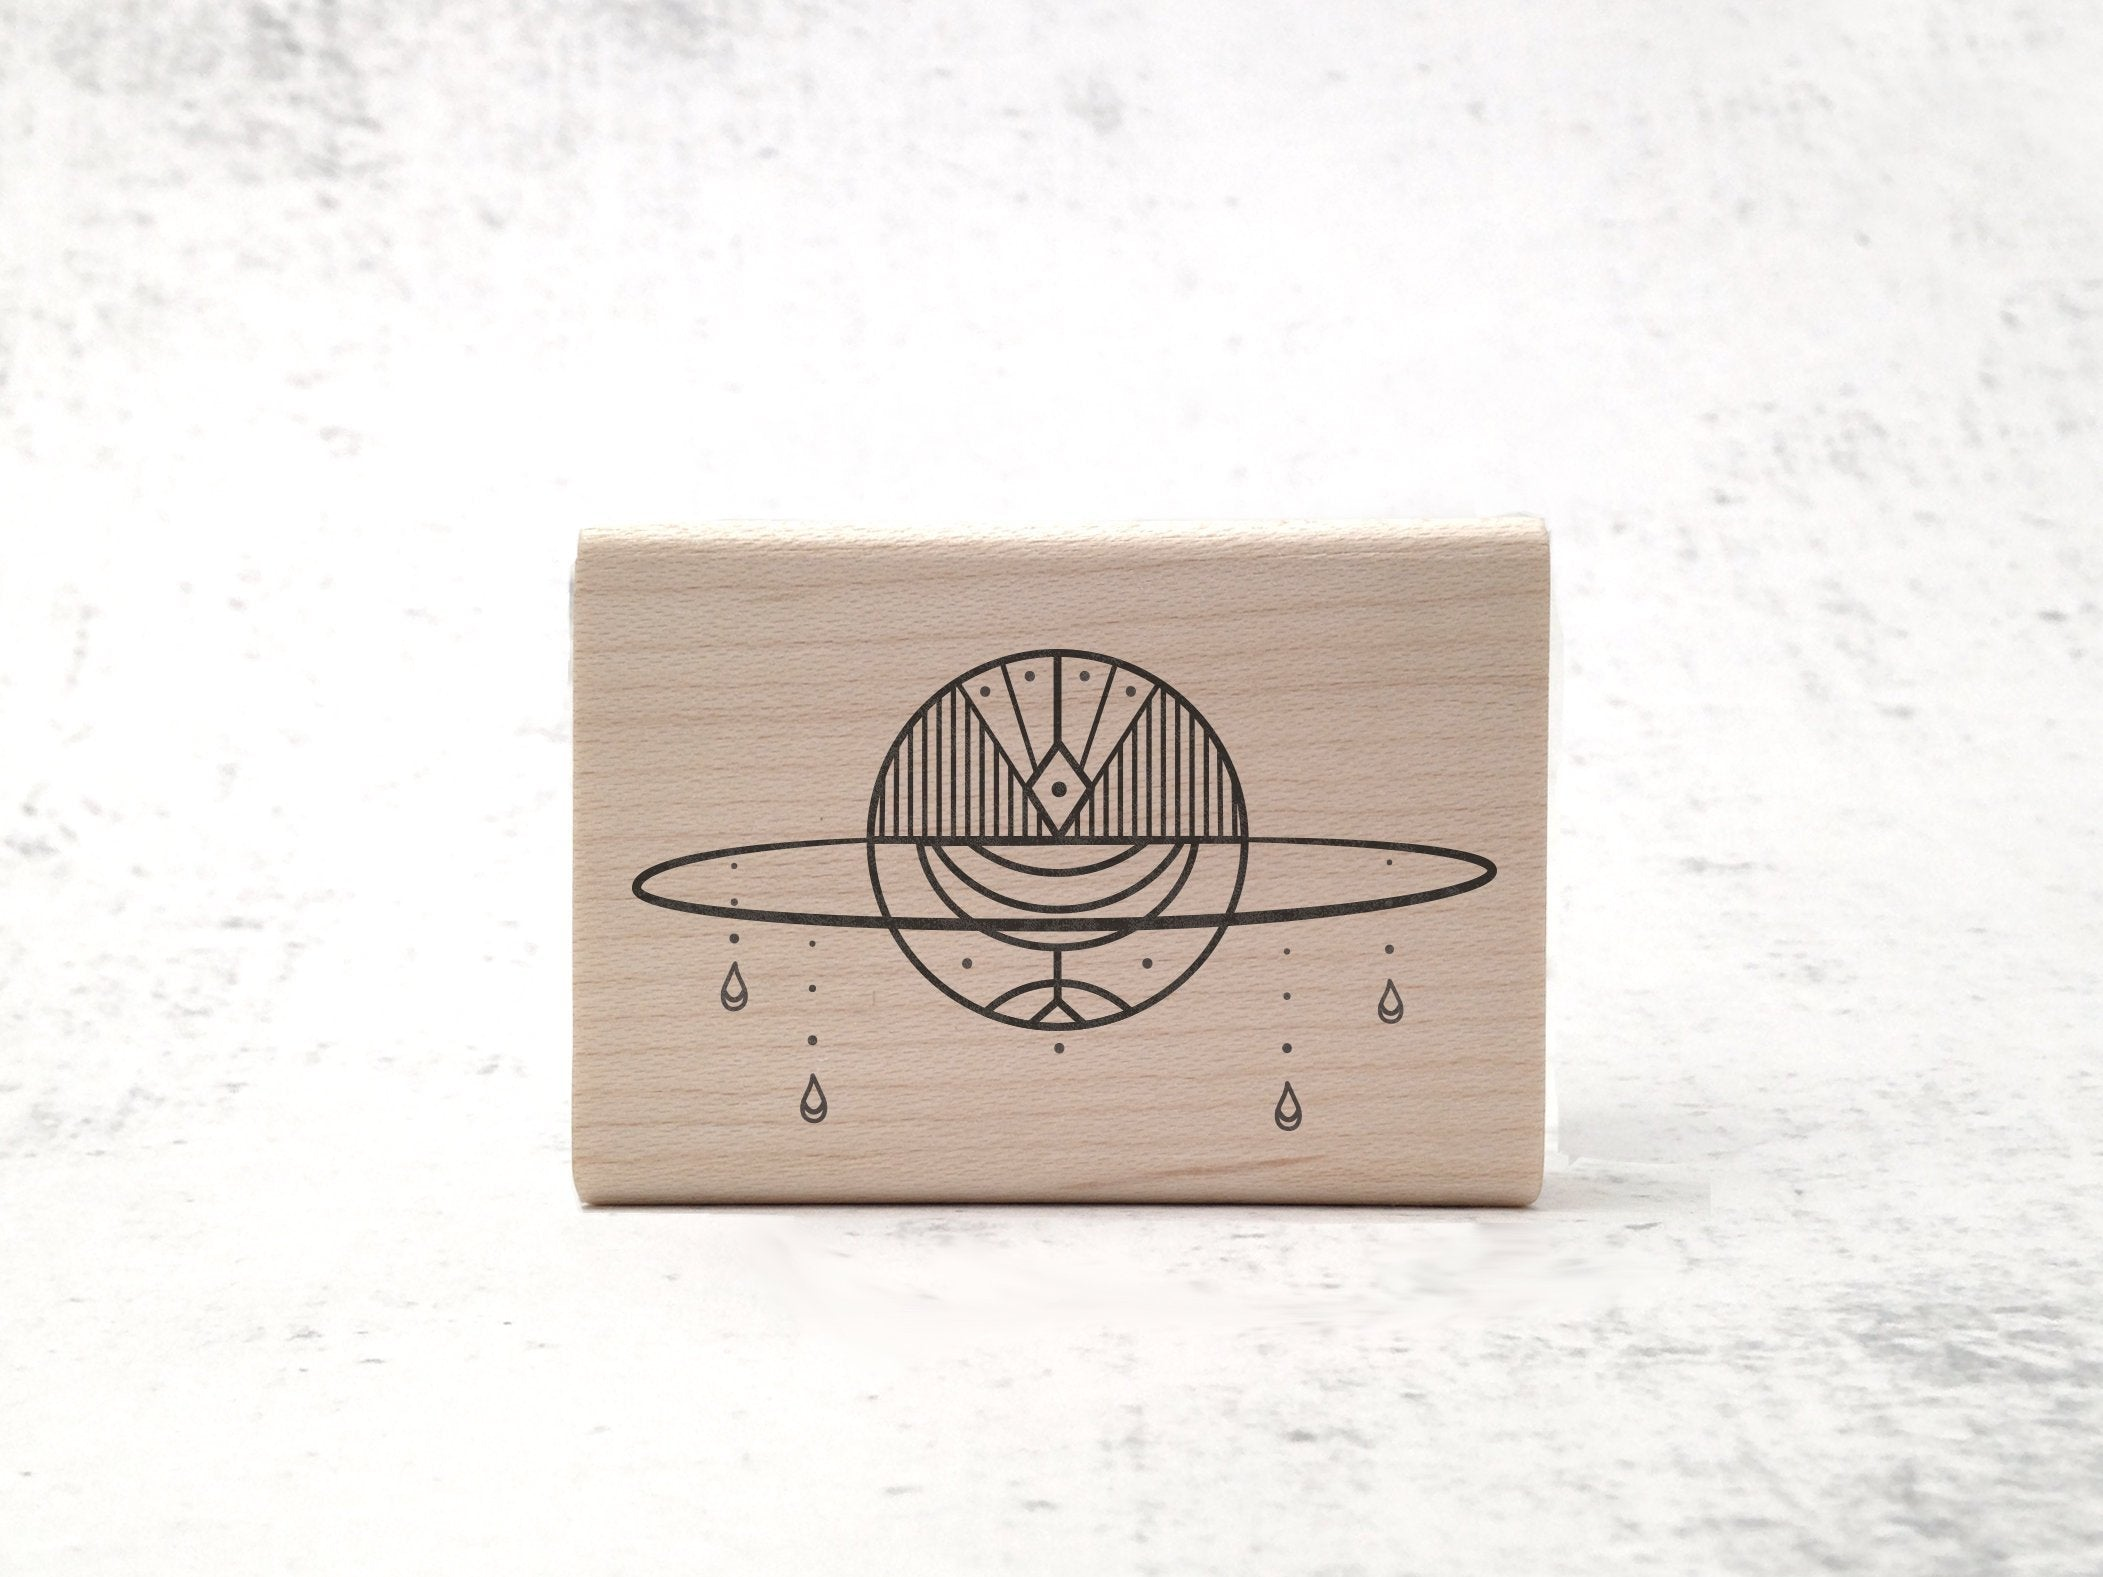 Art Deco Celestial Saturn Stamp - 1920's Aesthetic  / Astronomy Rubber Stamp - Latin Outer Space Stamp